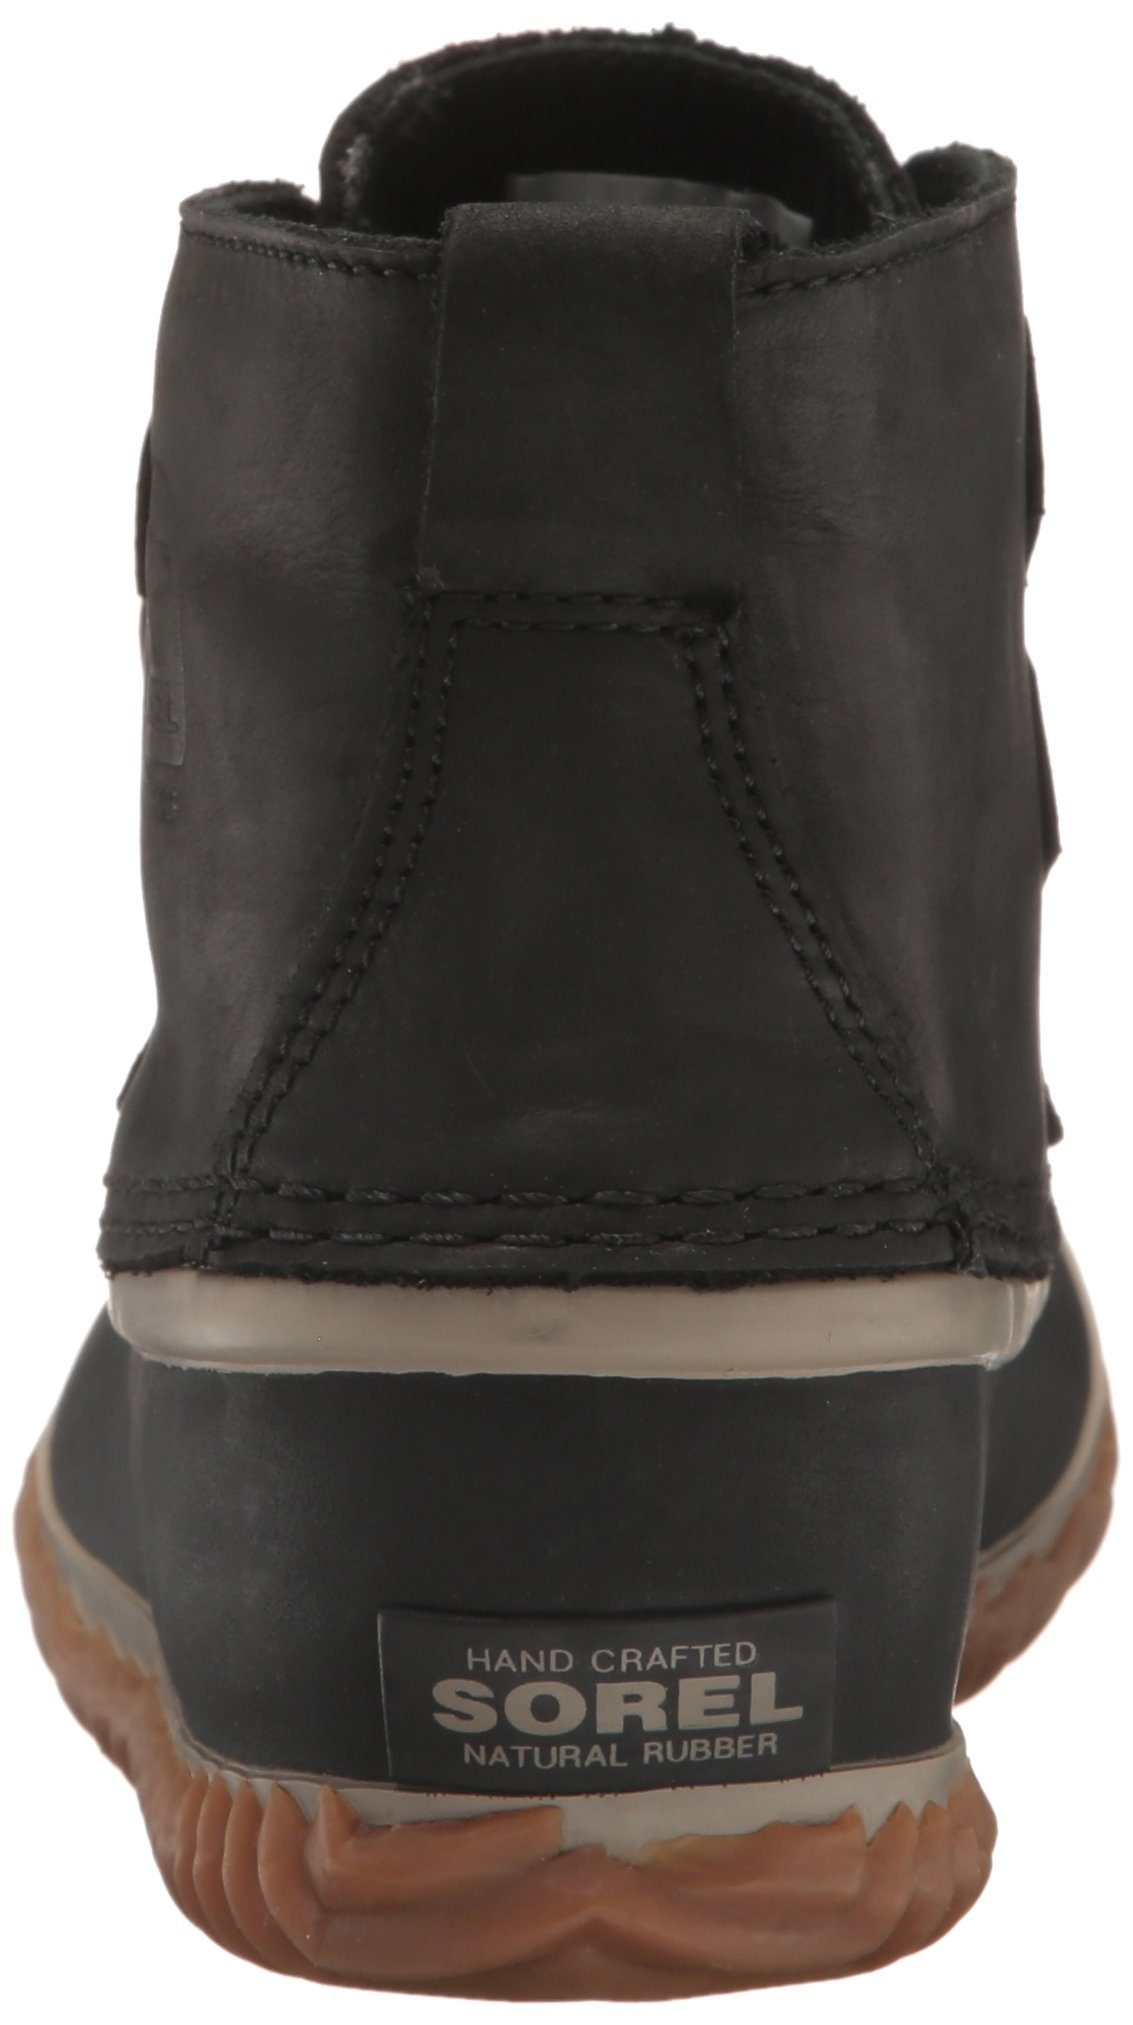 SOREL Women's Out N About Leather Rain Snow Boot, Black, 7.5 M US by SOREL (Image #2)